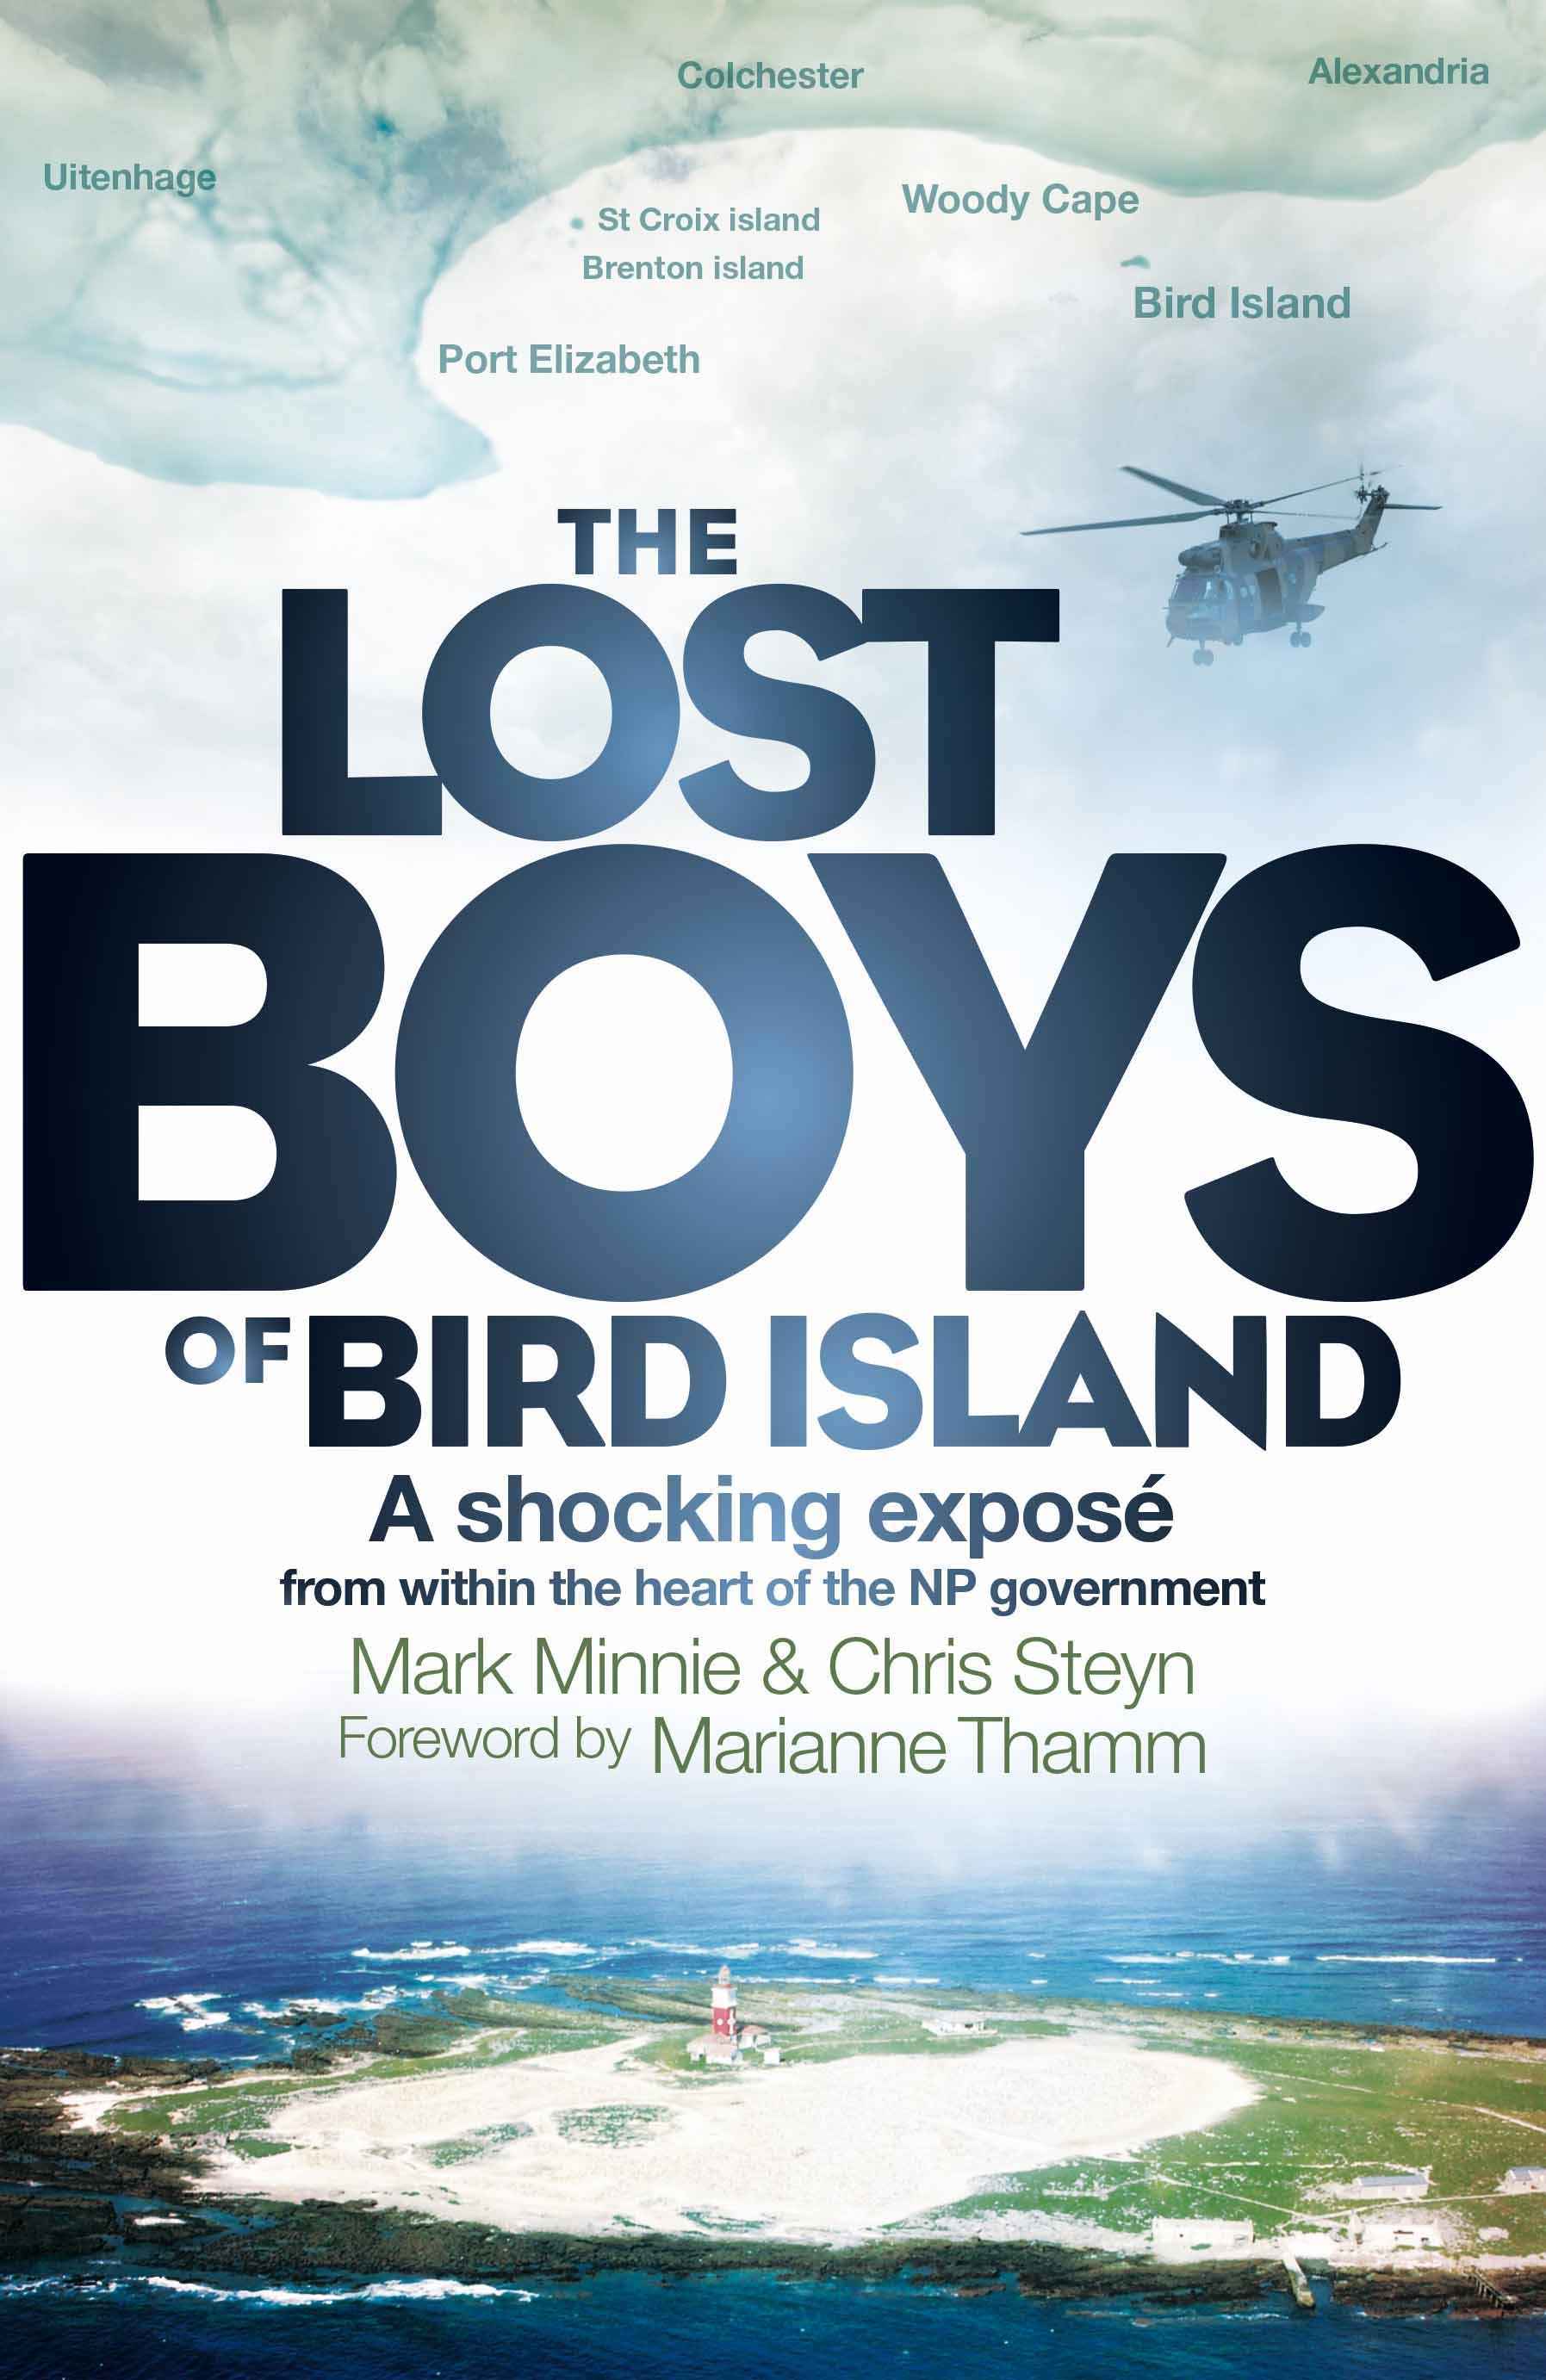 The Lost Boys of Bird Island